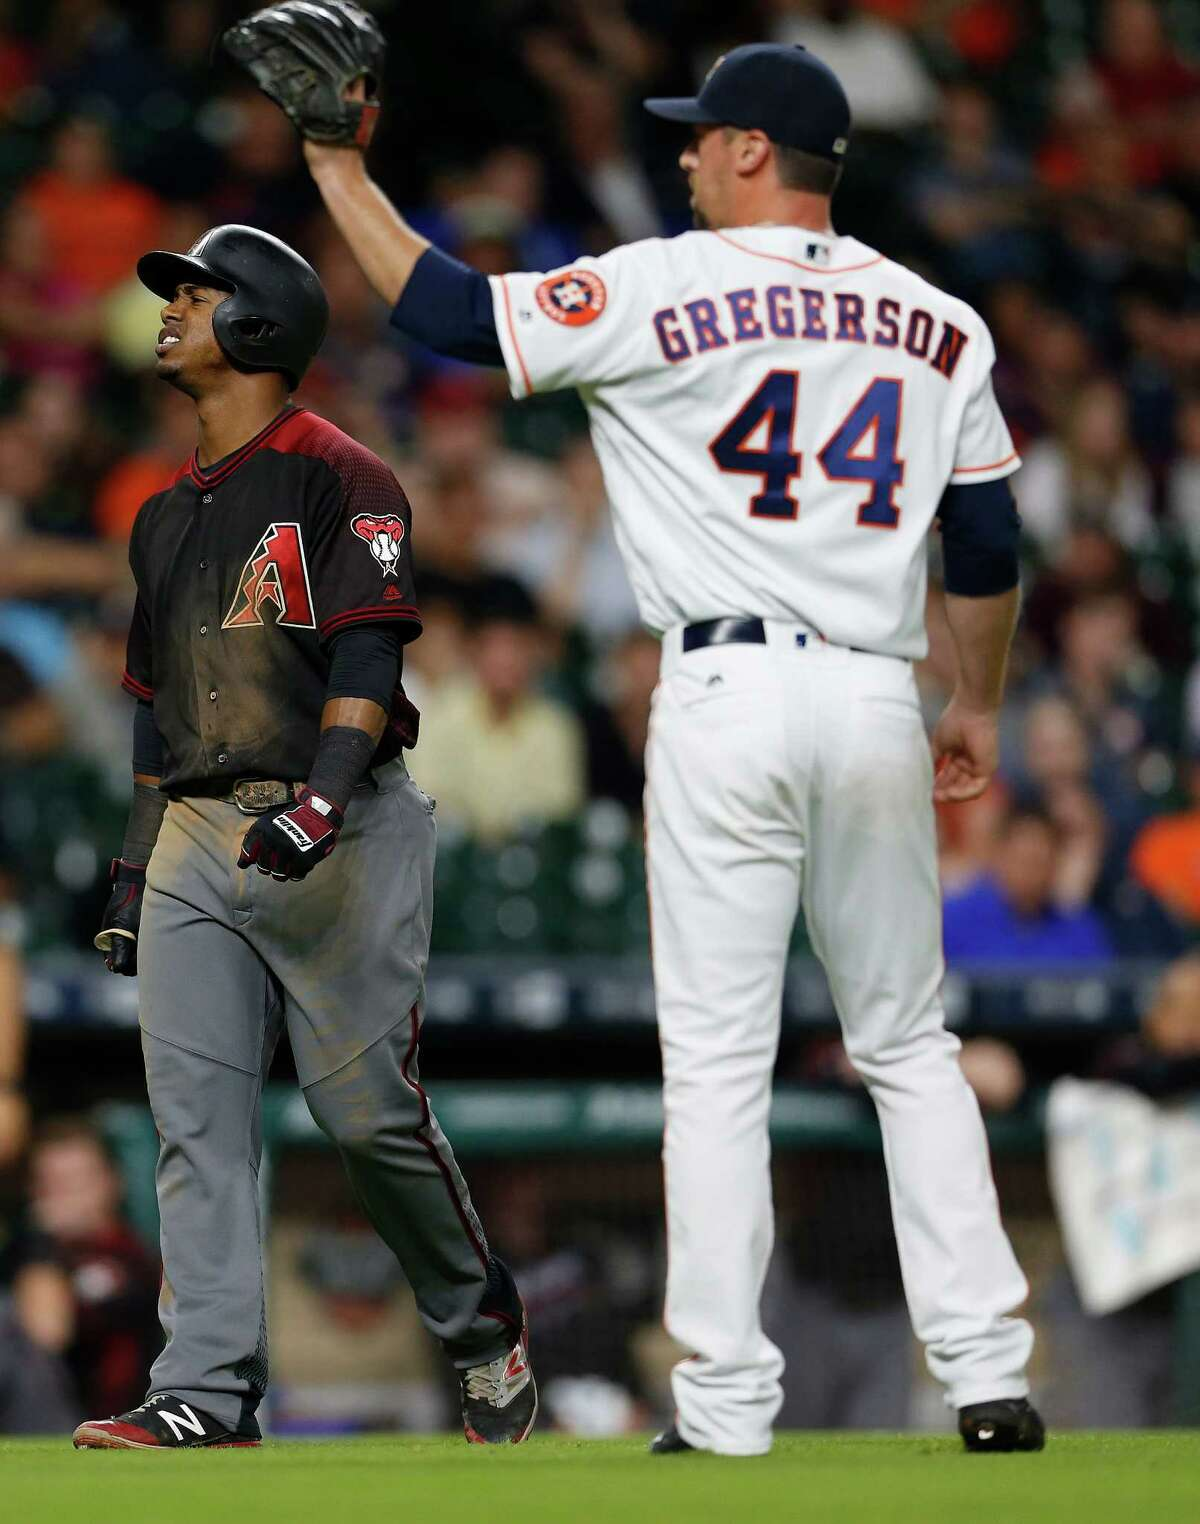 Arizona Diamondbacks second baseman Jean Segura (2) reacts after getting hit by a pitch from Houston Astros relief pitcher Luke Gregerson (44) in the ninth inning of an MLB baseball game at Minute Maid Park, Wednesday, June 1, 2016, in Houston.